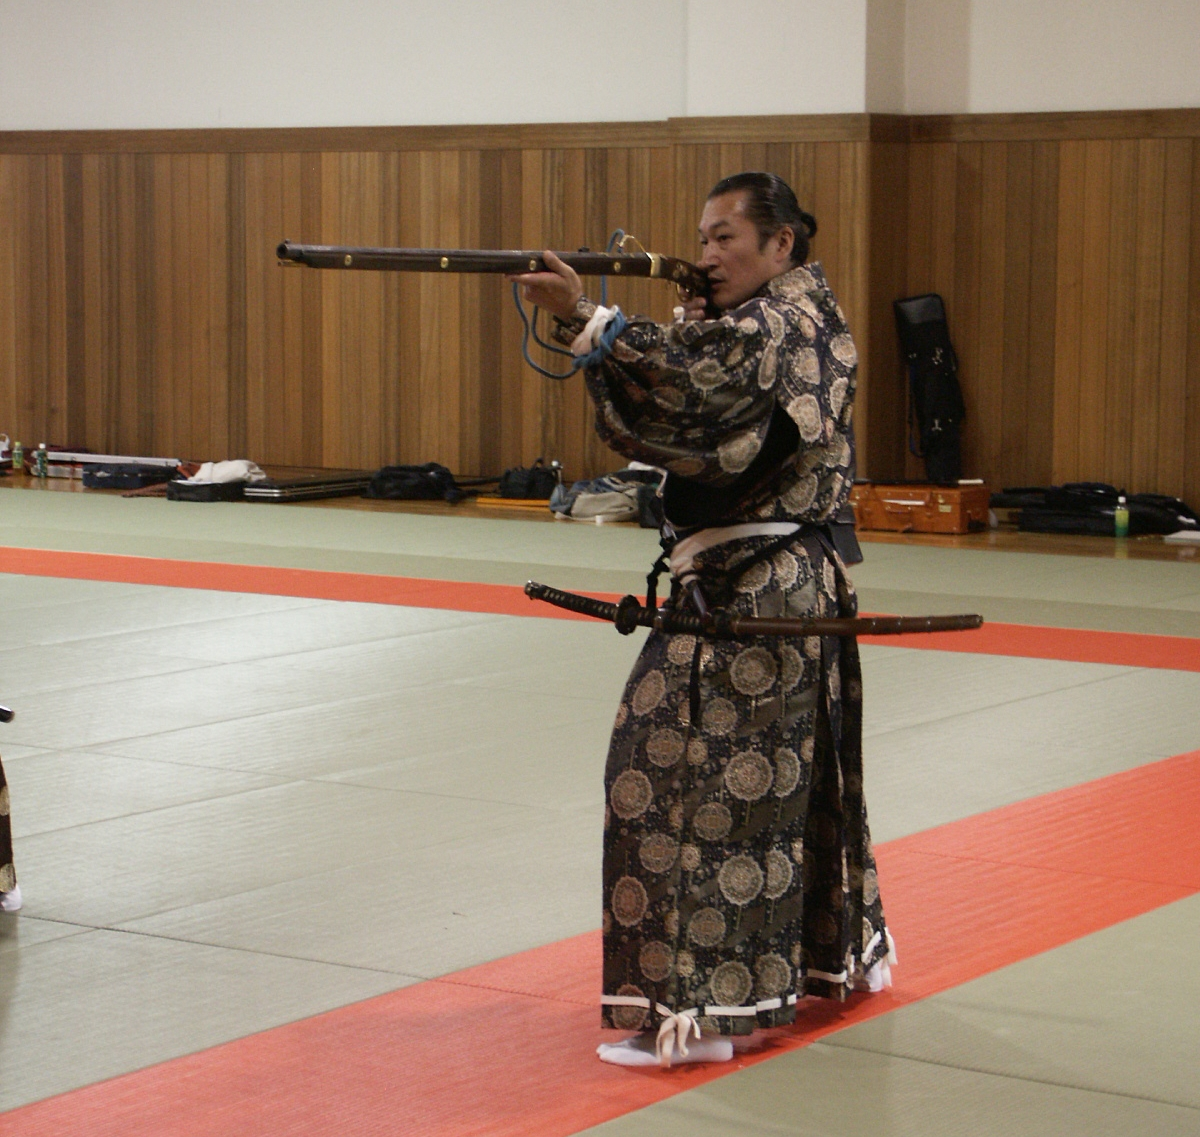 An Edo period tachi sword worn by a member of the Takeda clan as he demonstrates an Edo period matchlock musket.